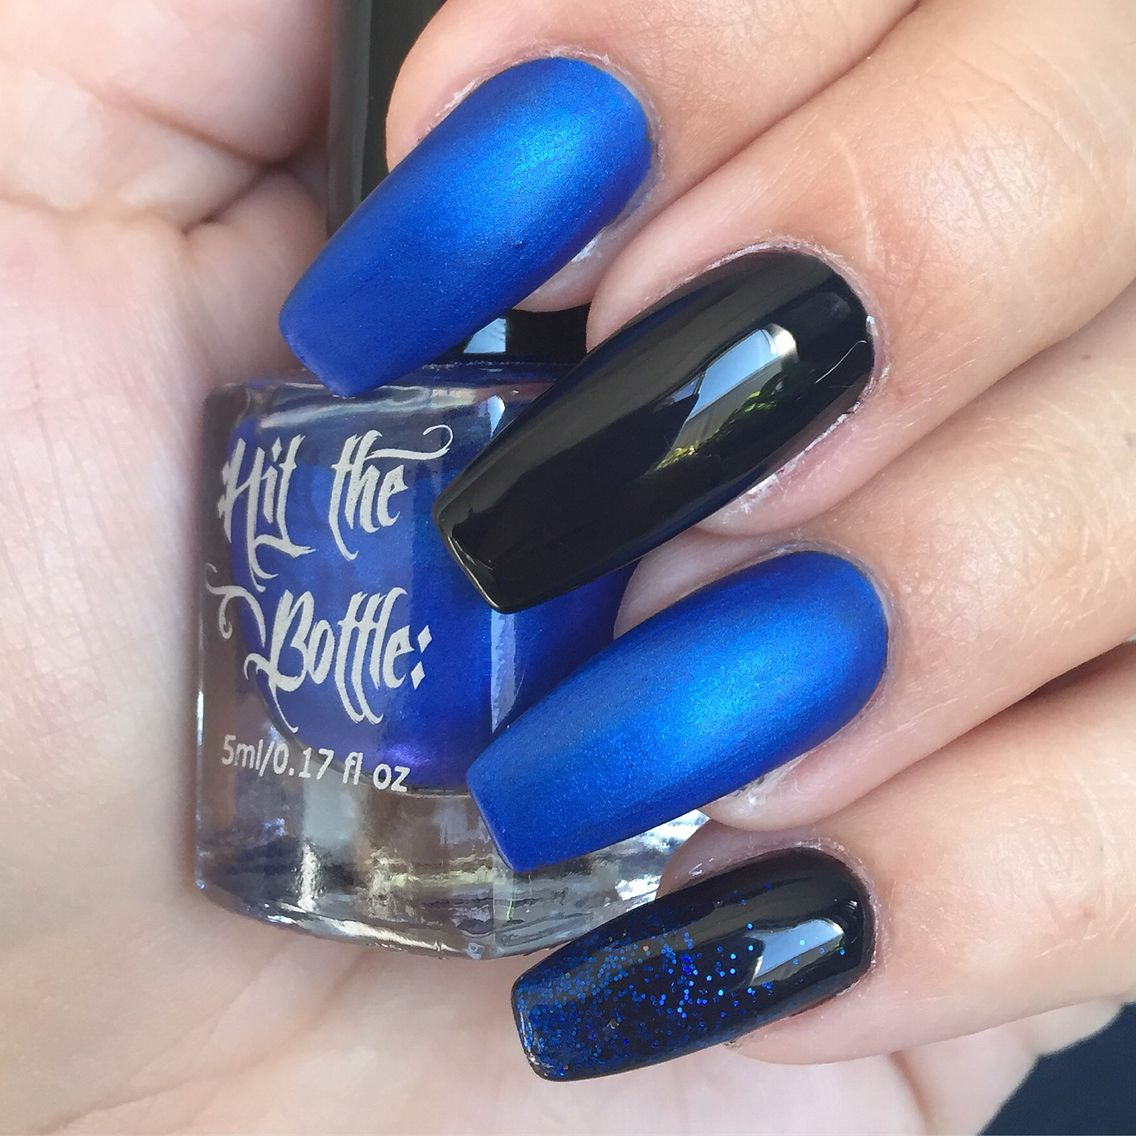 Fluid Nail Design Acrylic Nails Black Gel Polish Cobalt Blue And Royal Glitter Fade Coffin Long